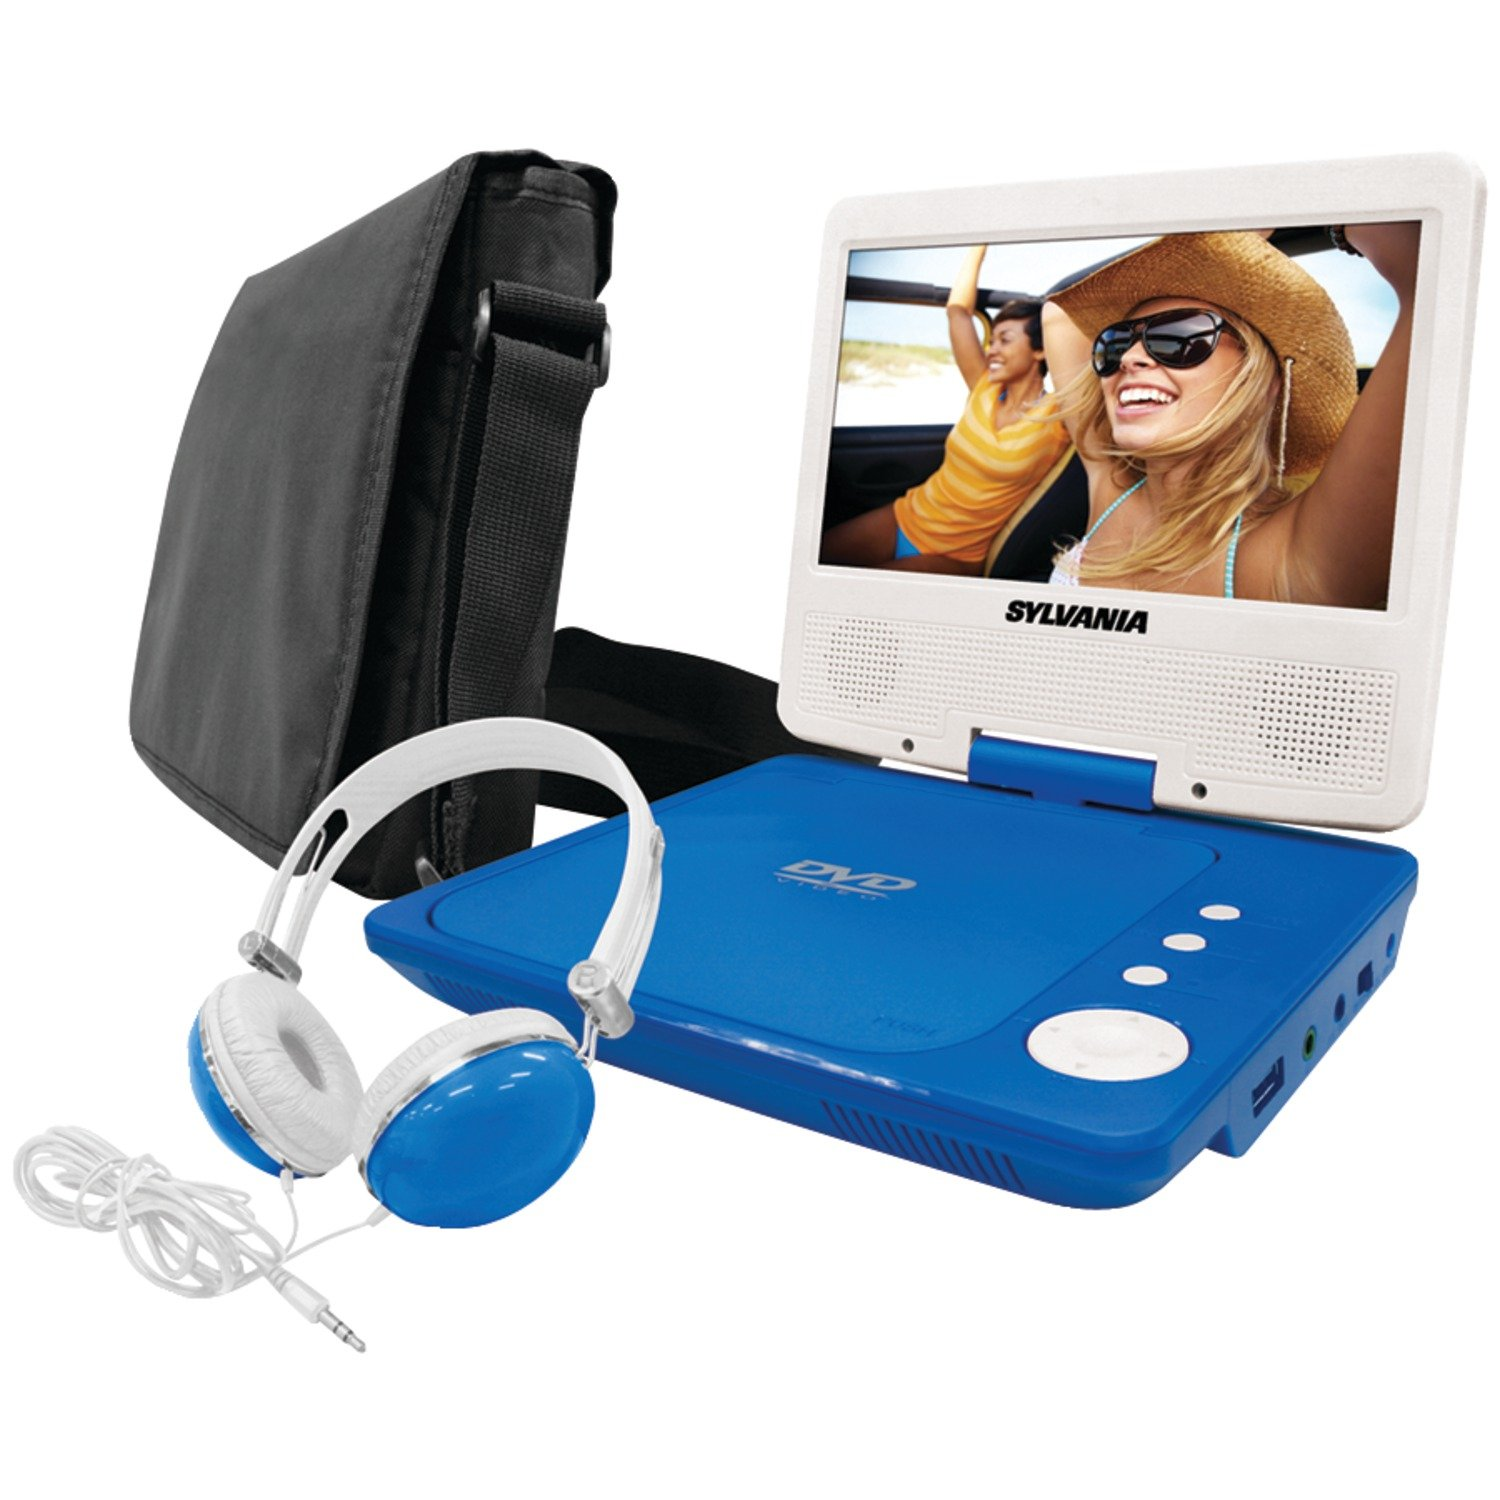 Sylvania SDVD7060-Combo-Blue 7-Inch Portable DVD Player Bundle with Matching Oversize Headphones and Deluxe Travel Bag (Blue)